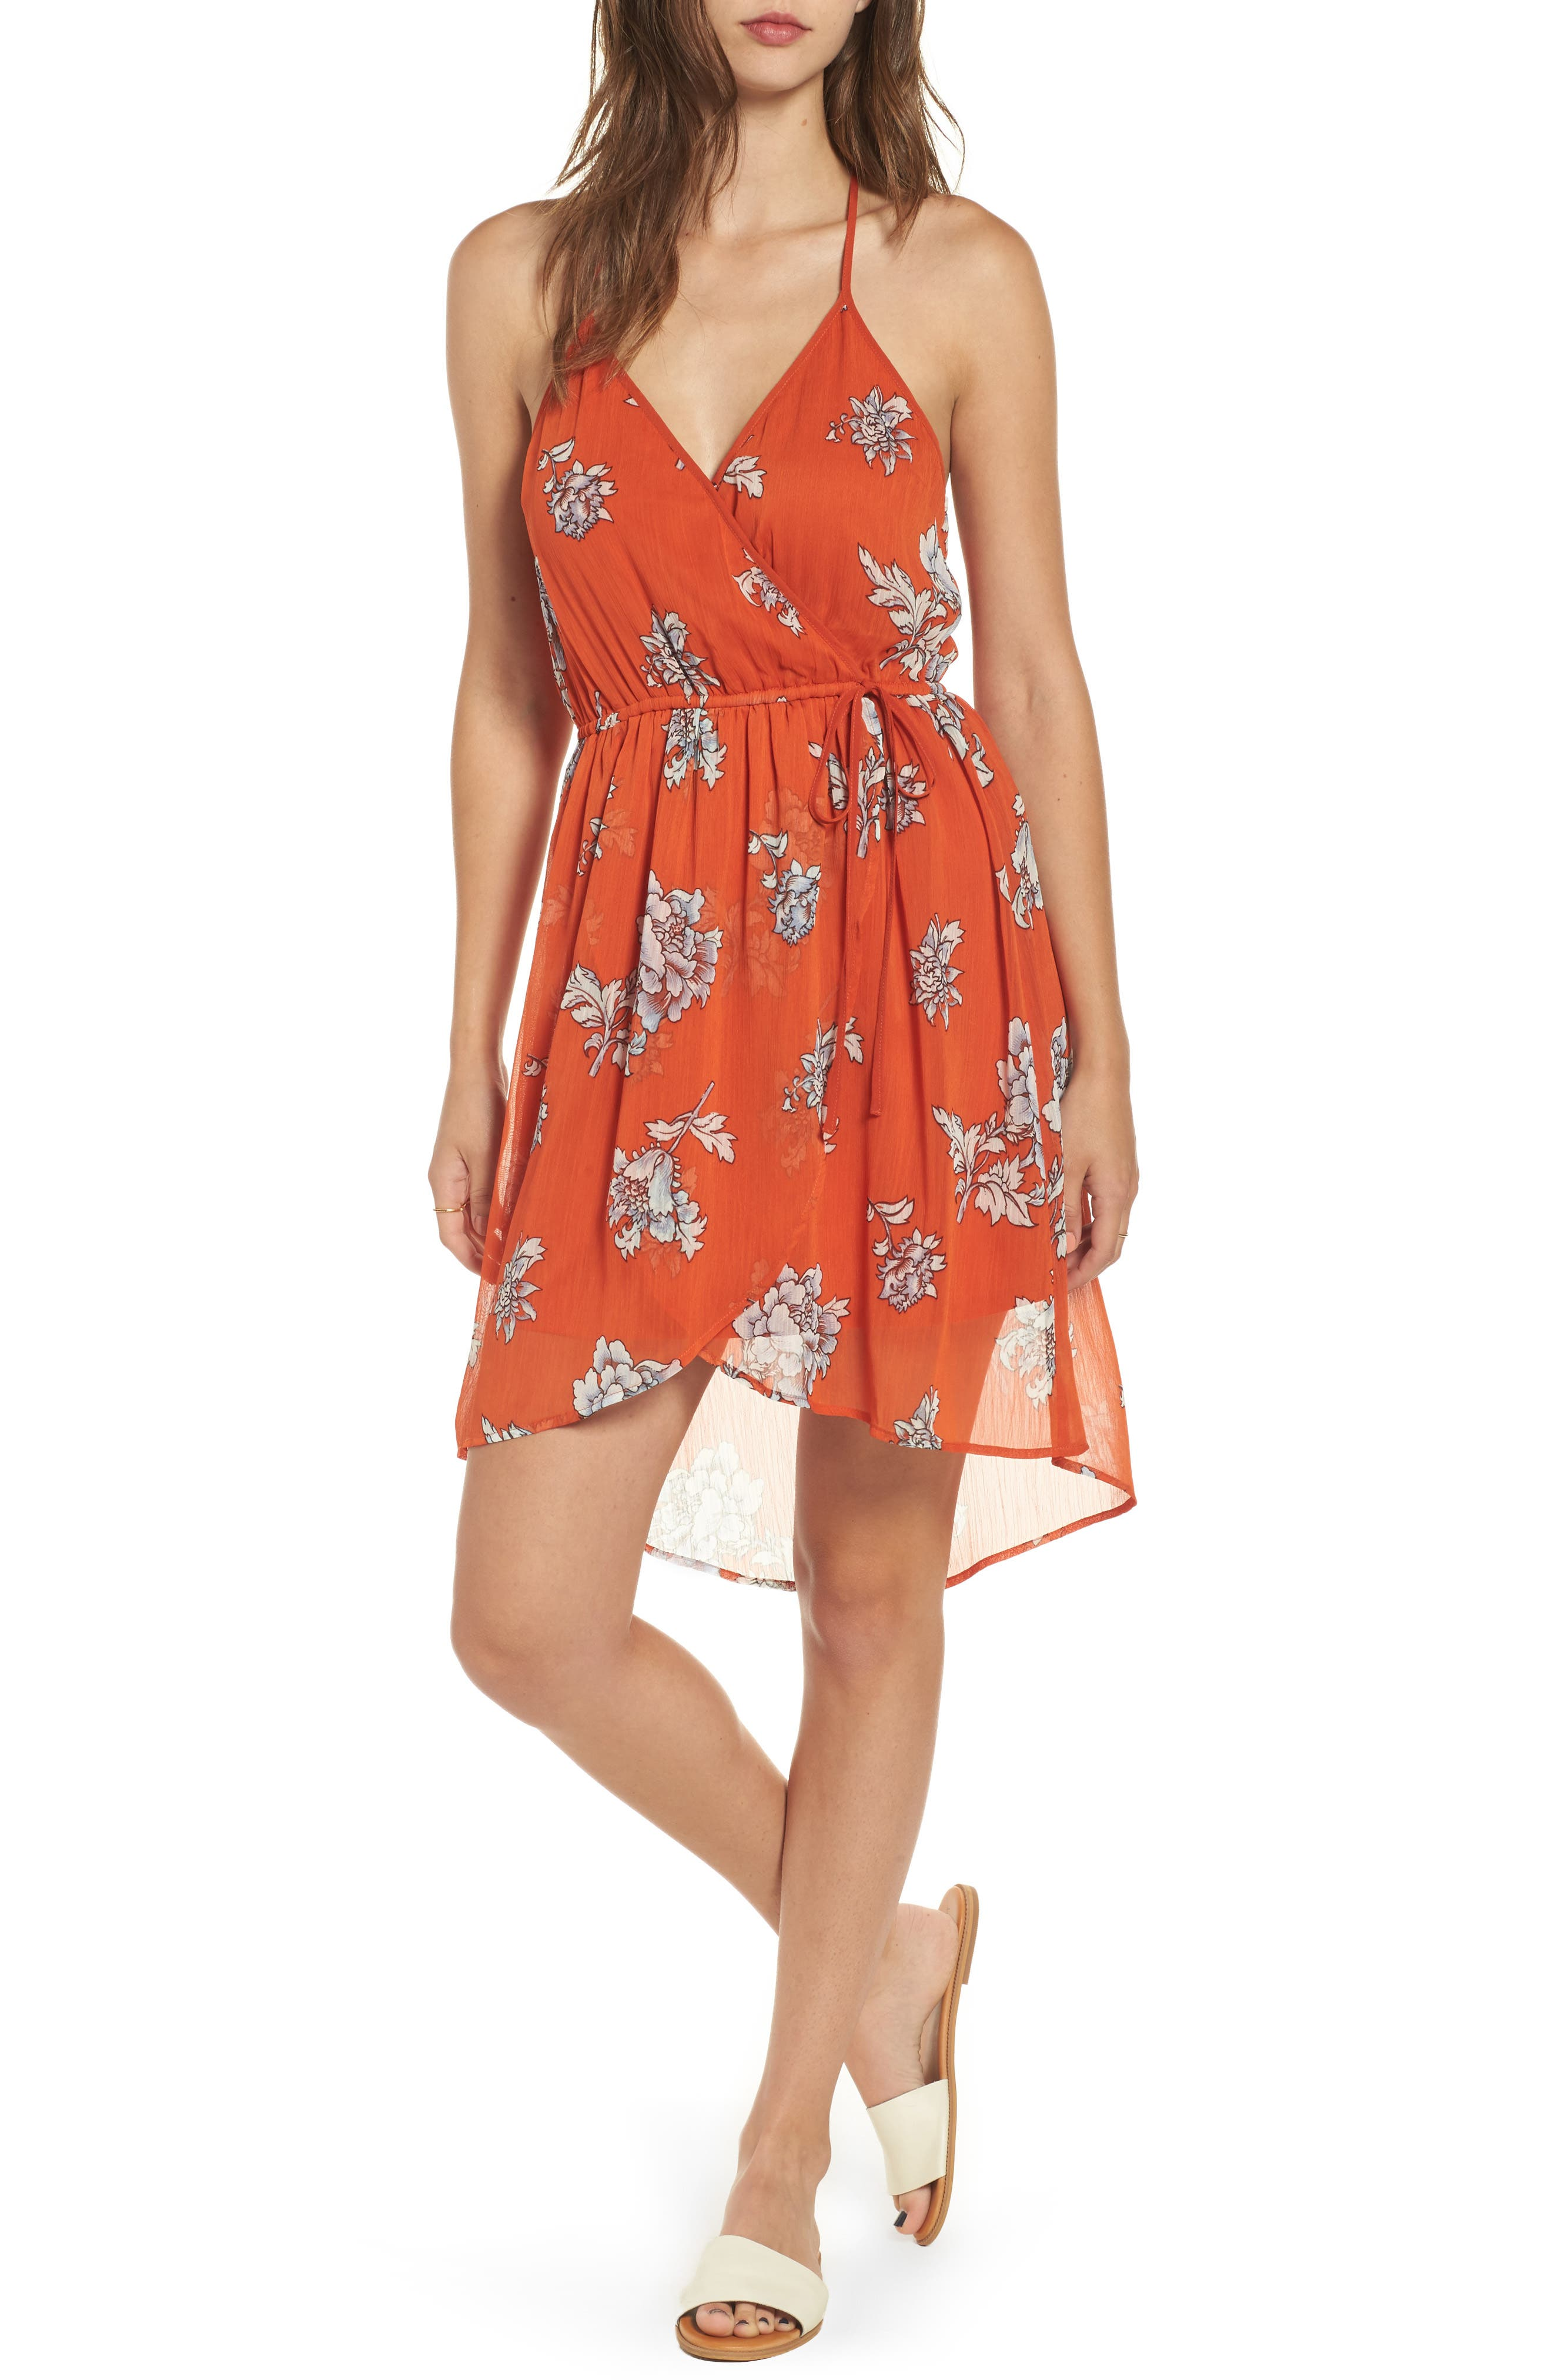 Band of Gypsies Floral Surplice High/Low Dress